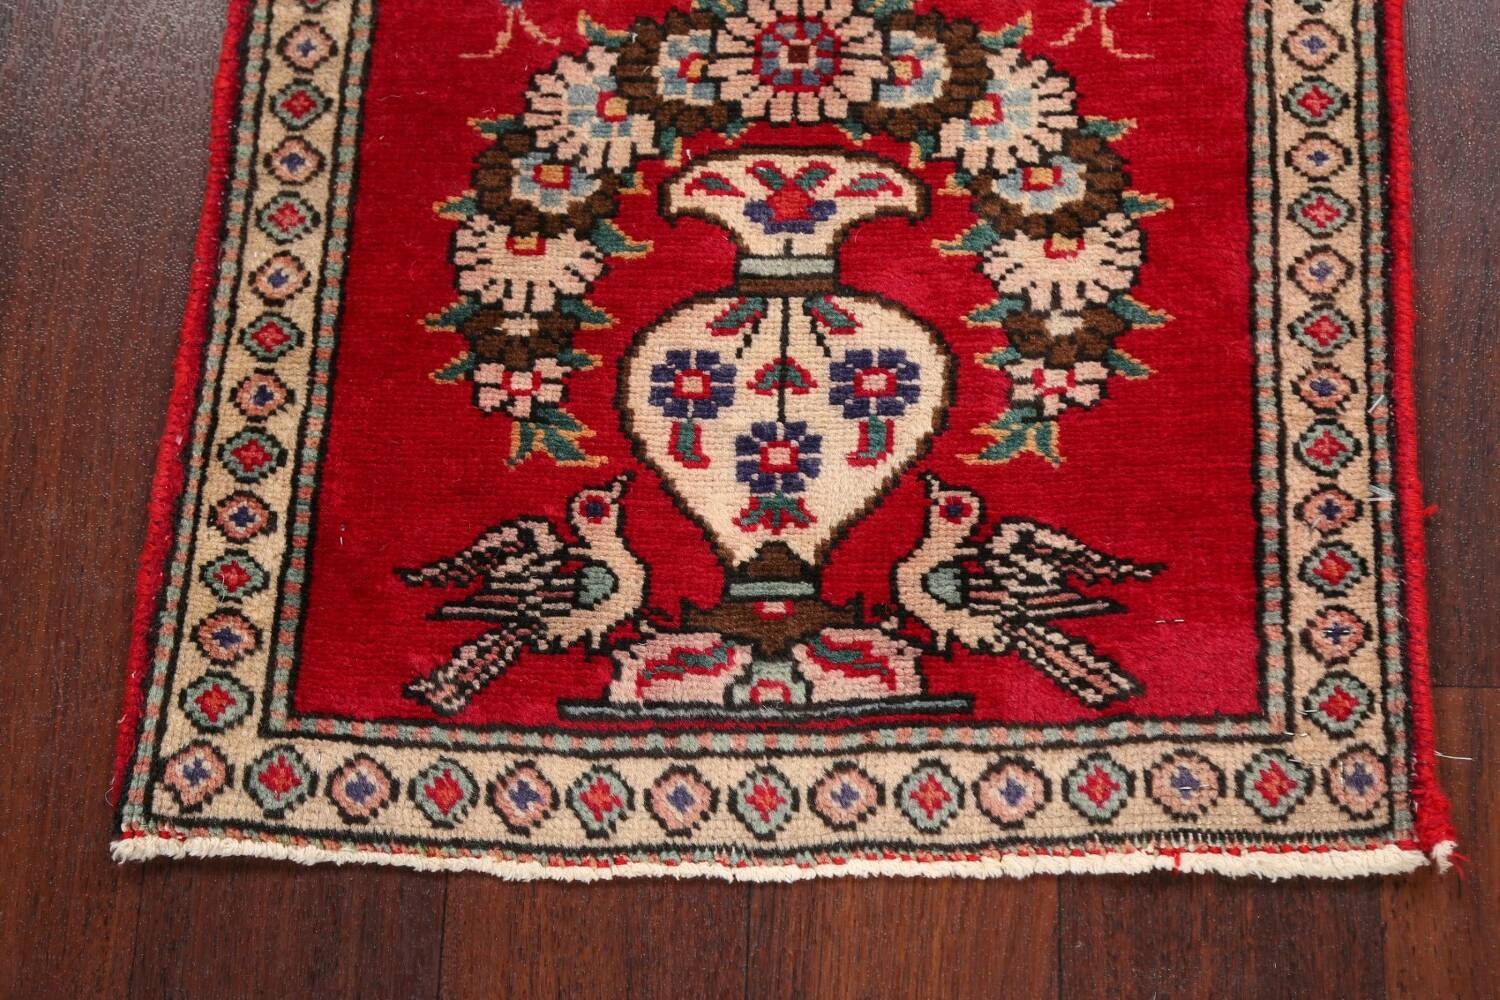 Animal Pictorial Red Tabriz Persian Area Rug 2x2 image 5